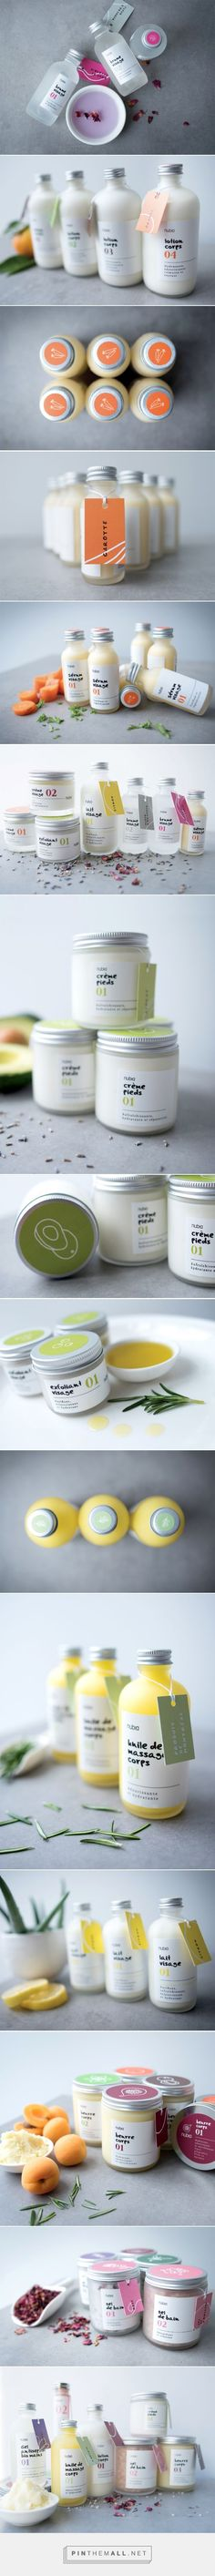 Nubia Spa Vert / Packaging for a new skin-care line line using natural, 100% bio ingredients by Alex Nereuta